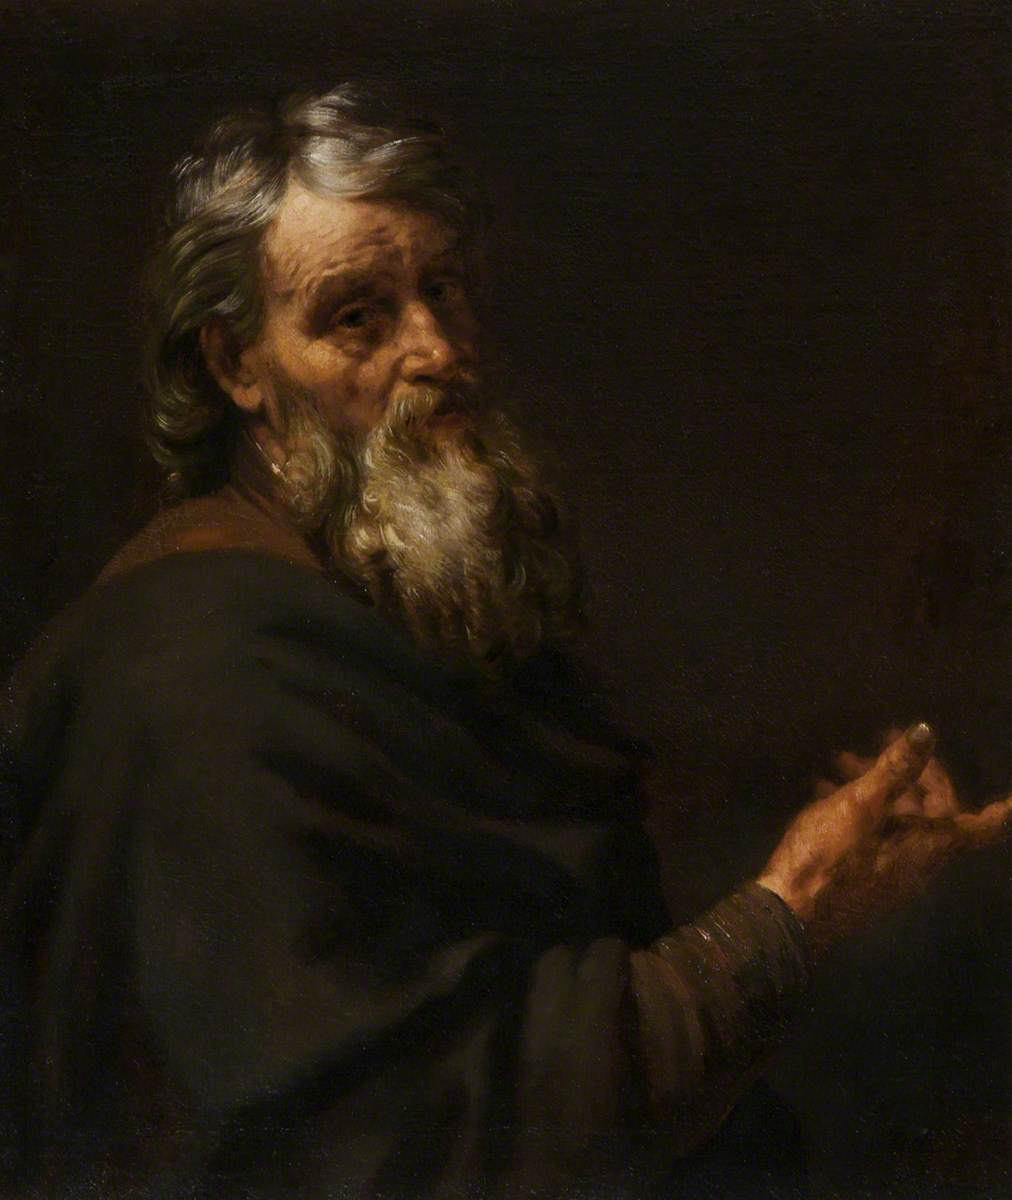 A Bearded Old Man Gesturing with His Right Hand